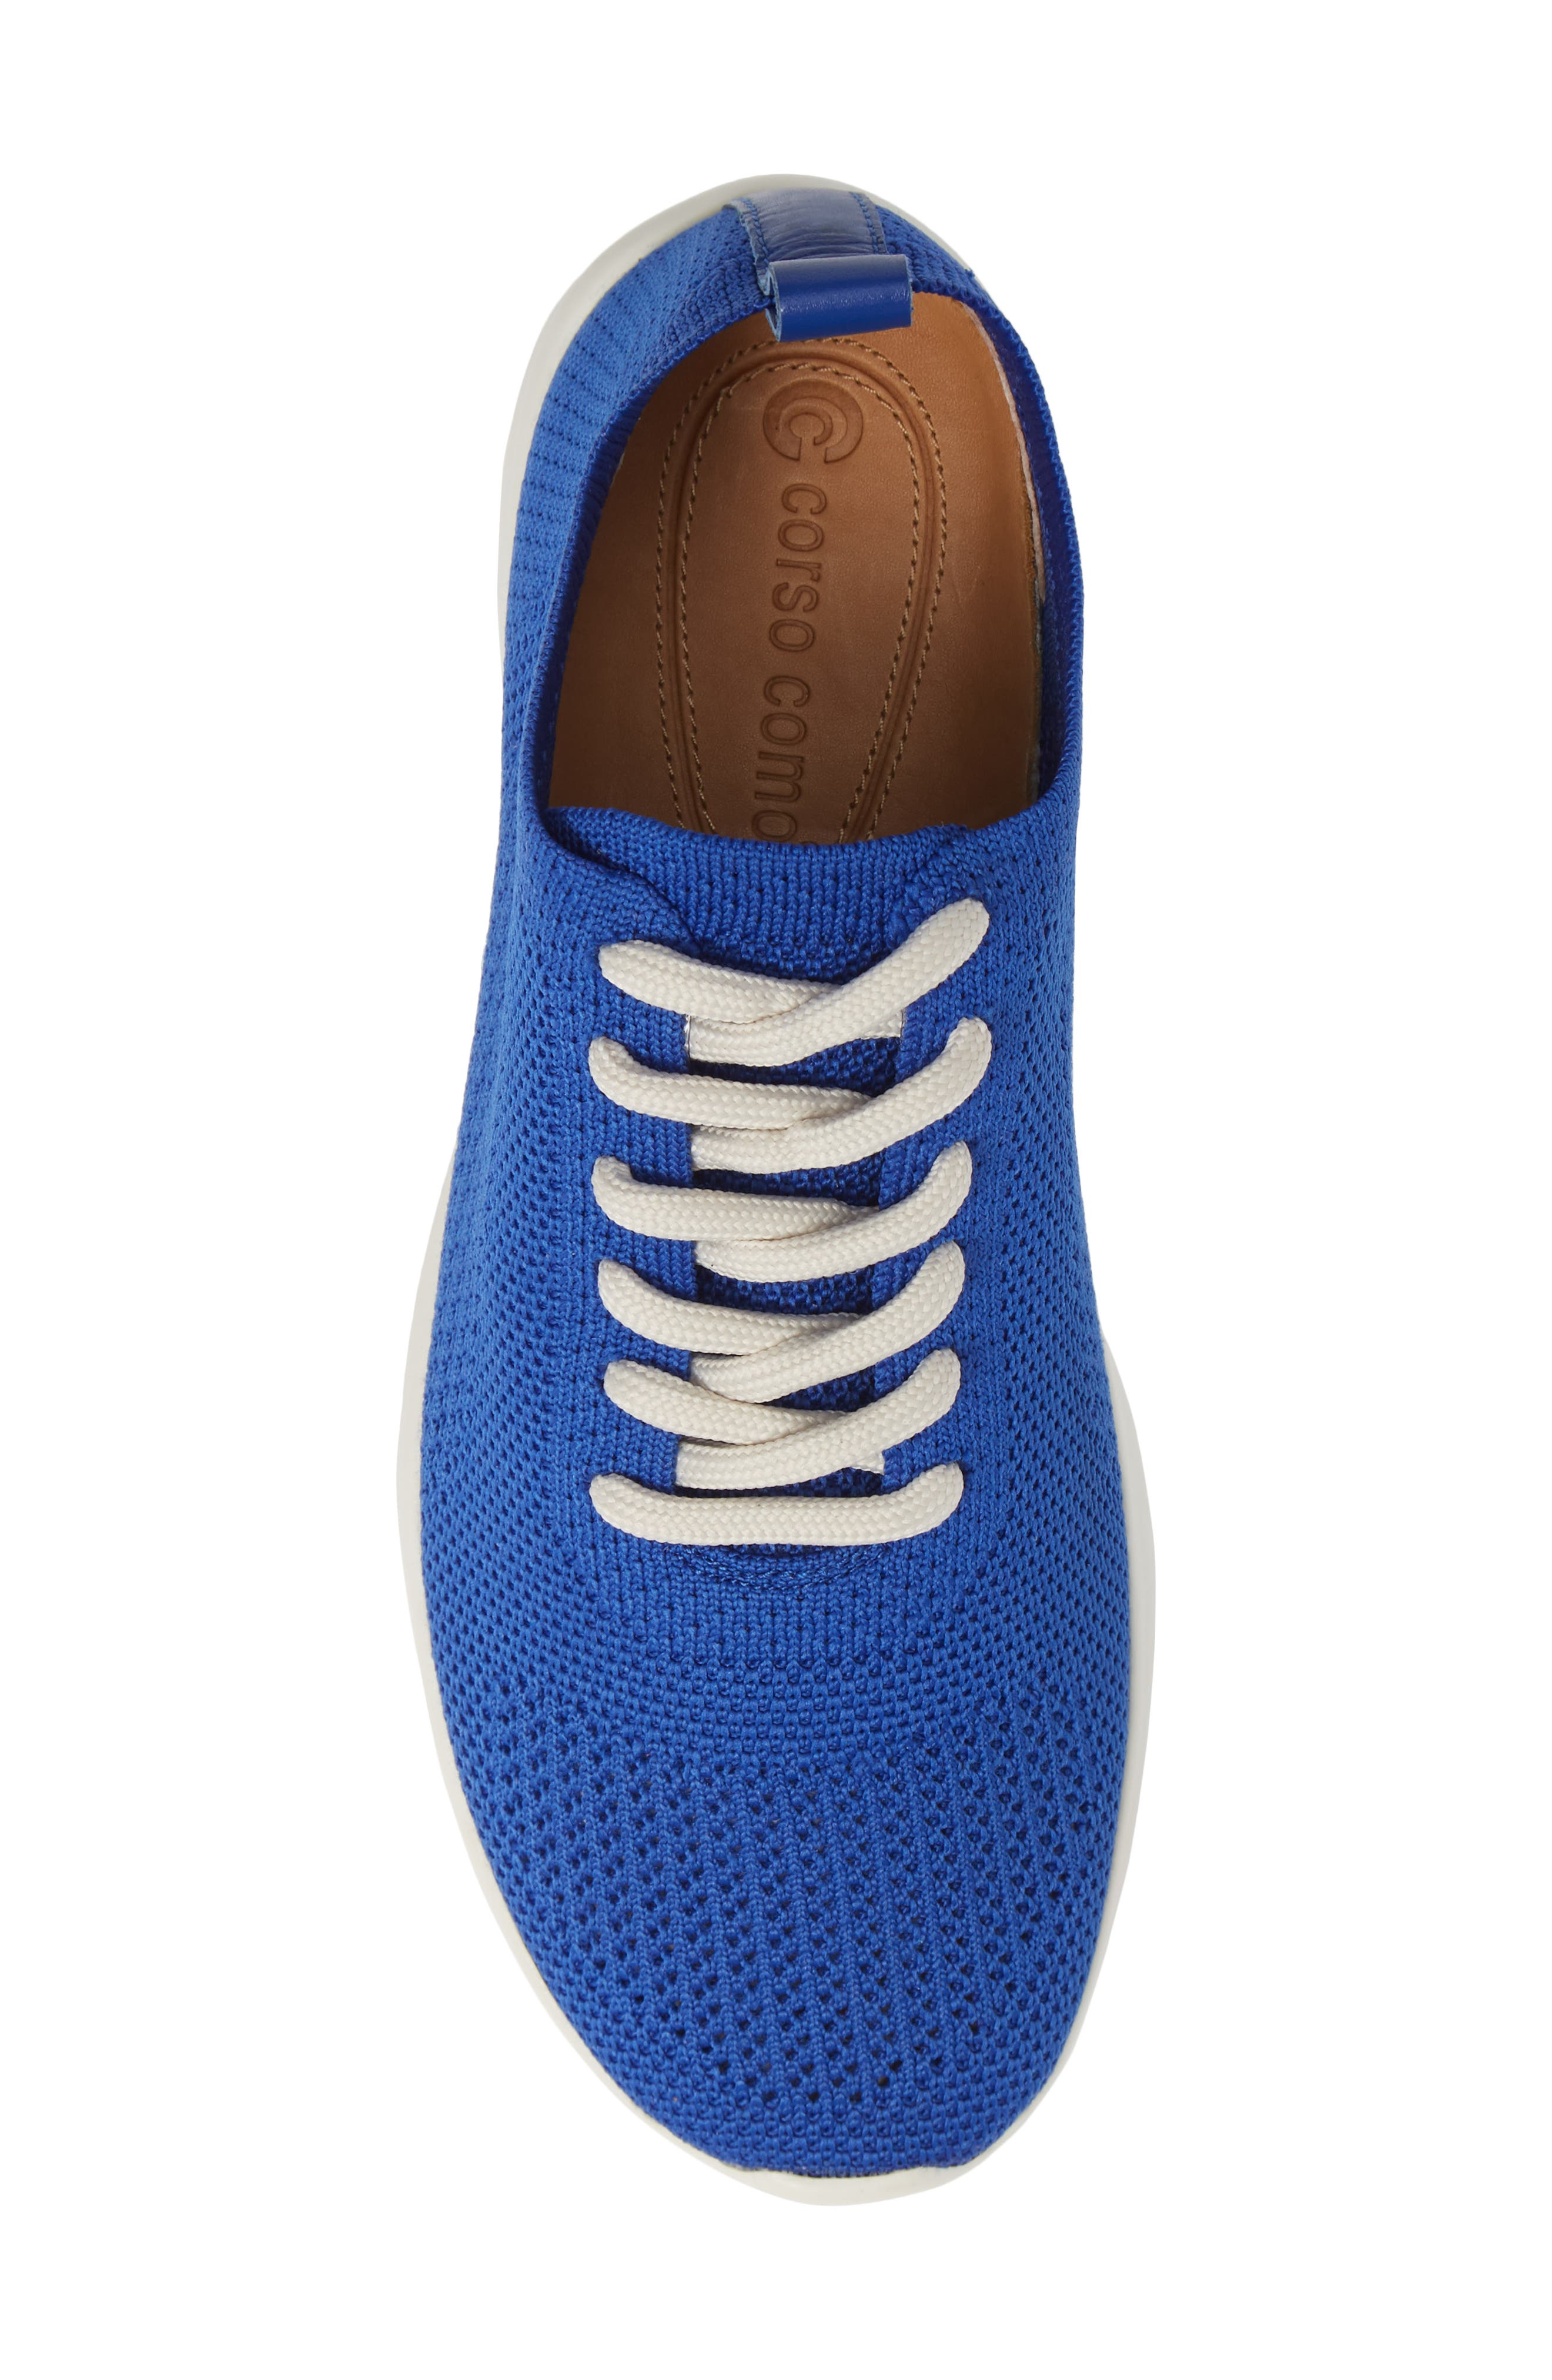 Randee Sneaker,                             Alternate thumbnail 5, color,                             461